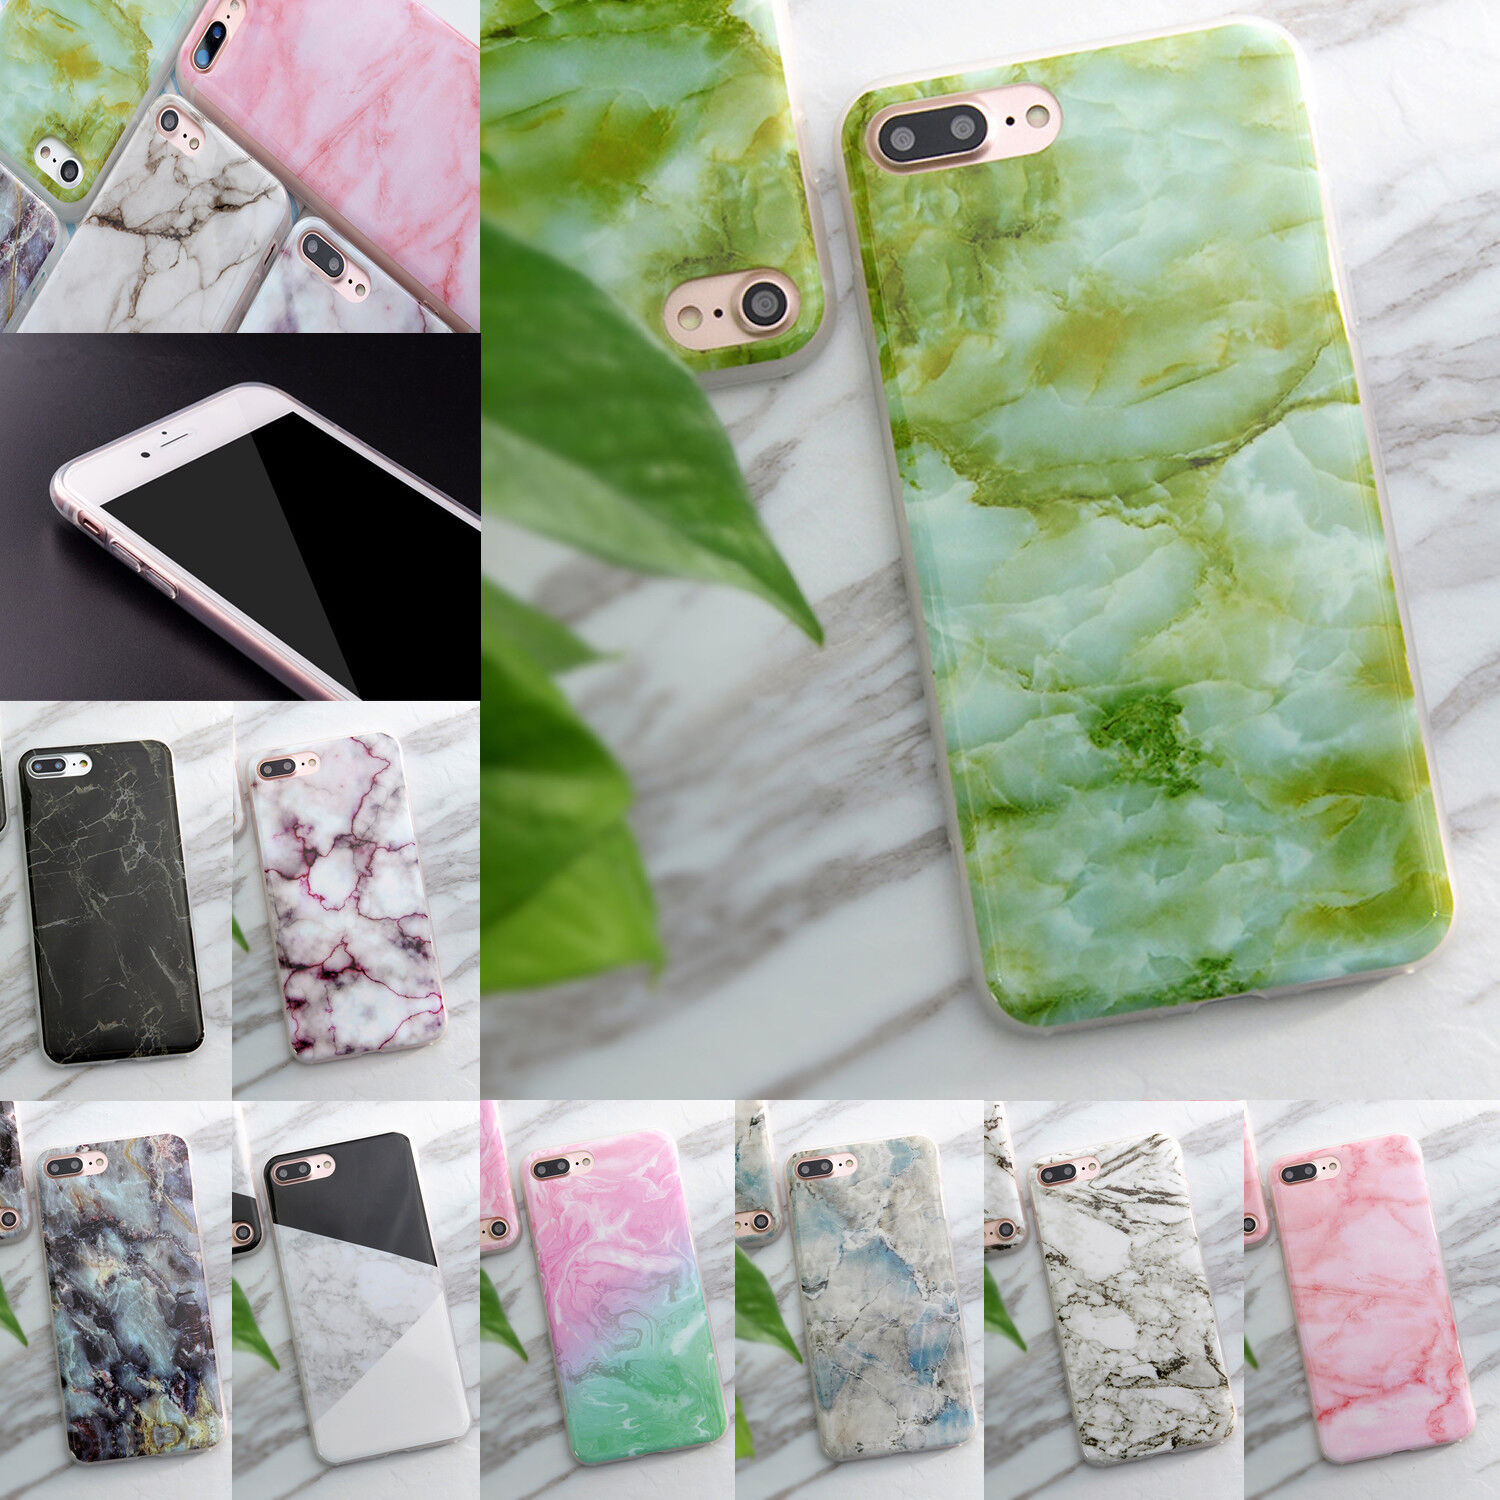 for-apple-iphone-x-8-7-plus-marble-cases-covers-accessories-womens-girls-bulk